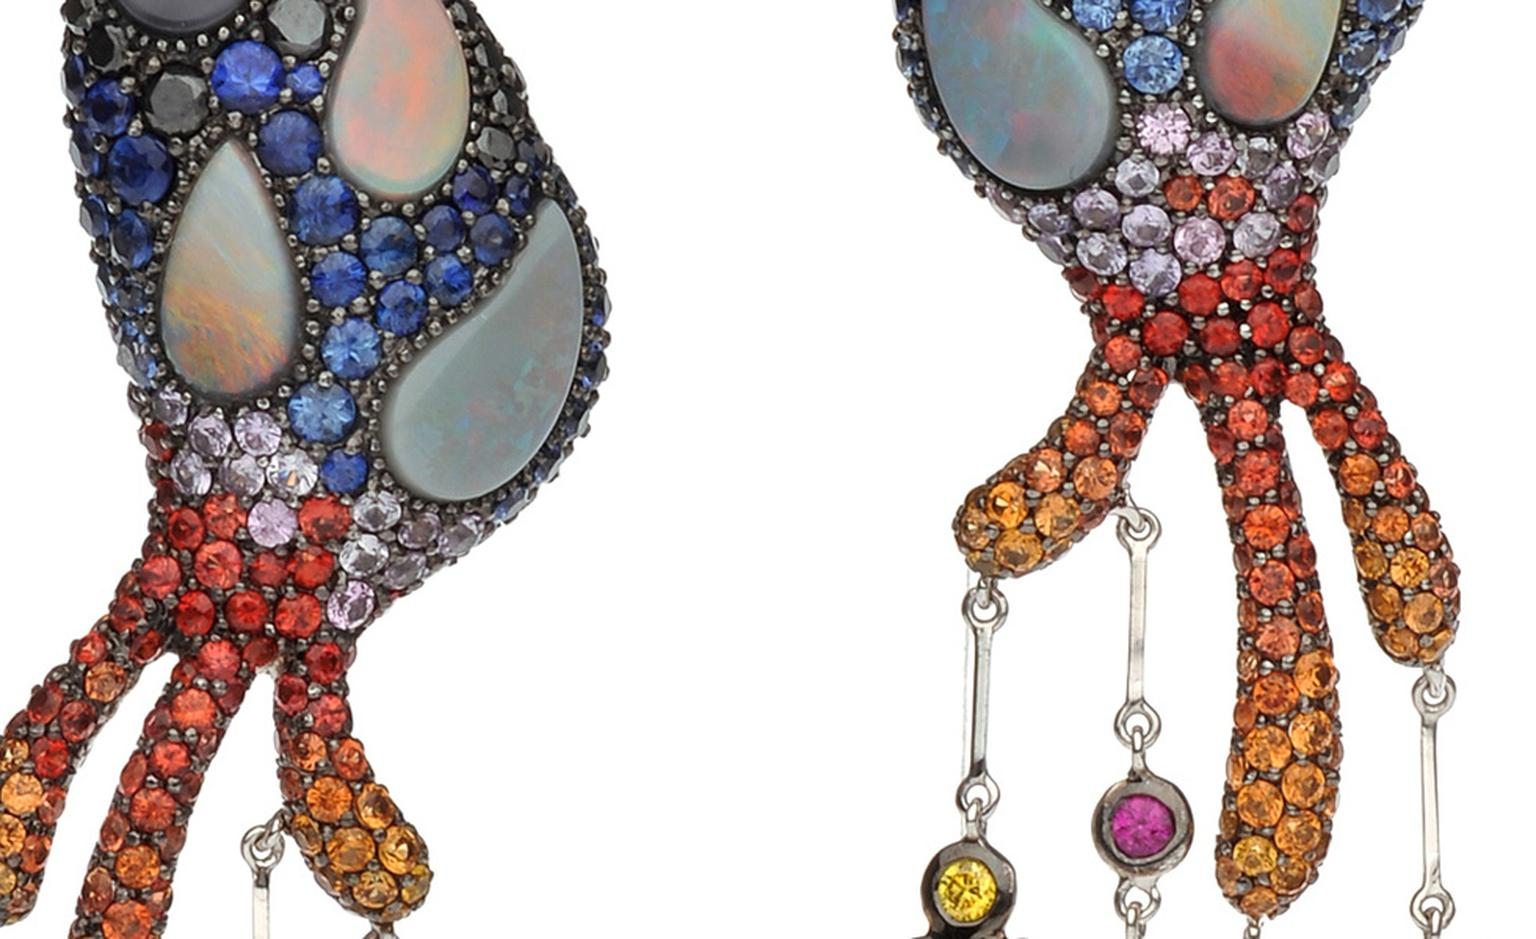 Autore, Fire & Ice Santorini Earrings in white and rose gold with Other-wordly opals and red hot orange and yellow sapphires make unlikely combinations in these Autore earrings. $55,000 AUD